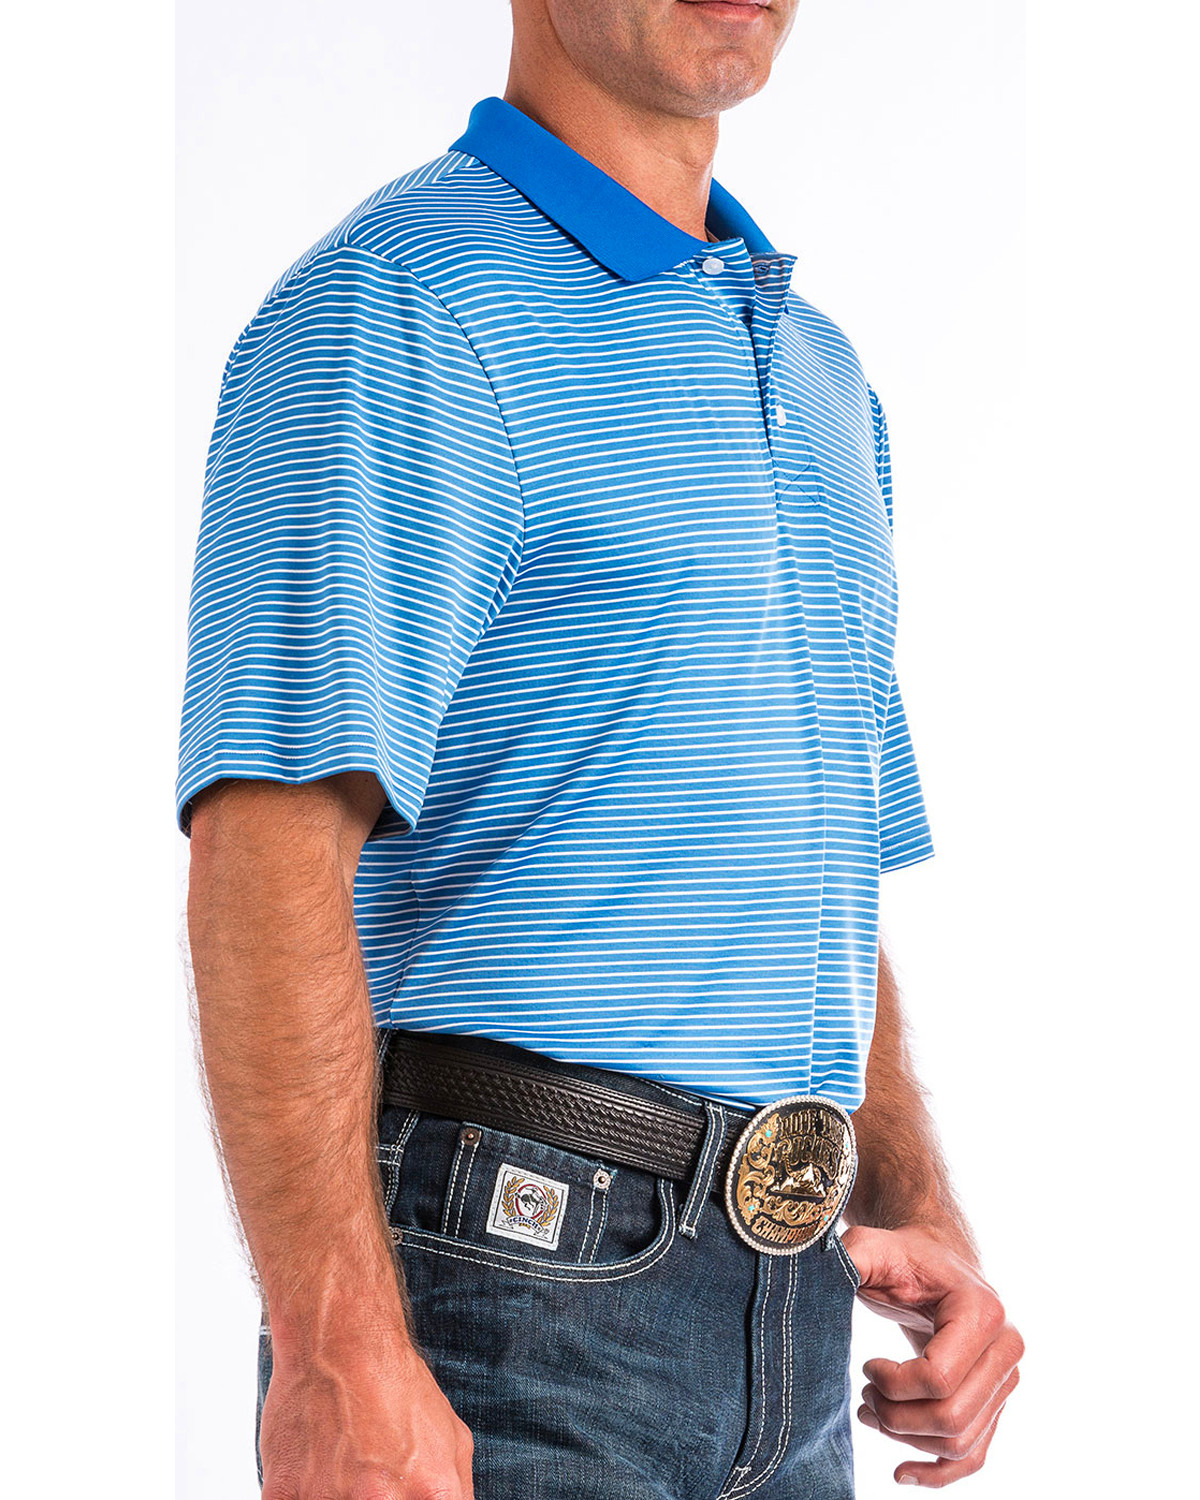 53cc7e336fb Cinch mens arenaflex blue striped athletic polo blue hi res JPG 1200x1500 Arenaflex  cinch athletic logo